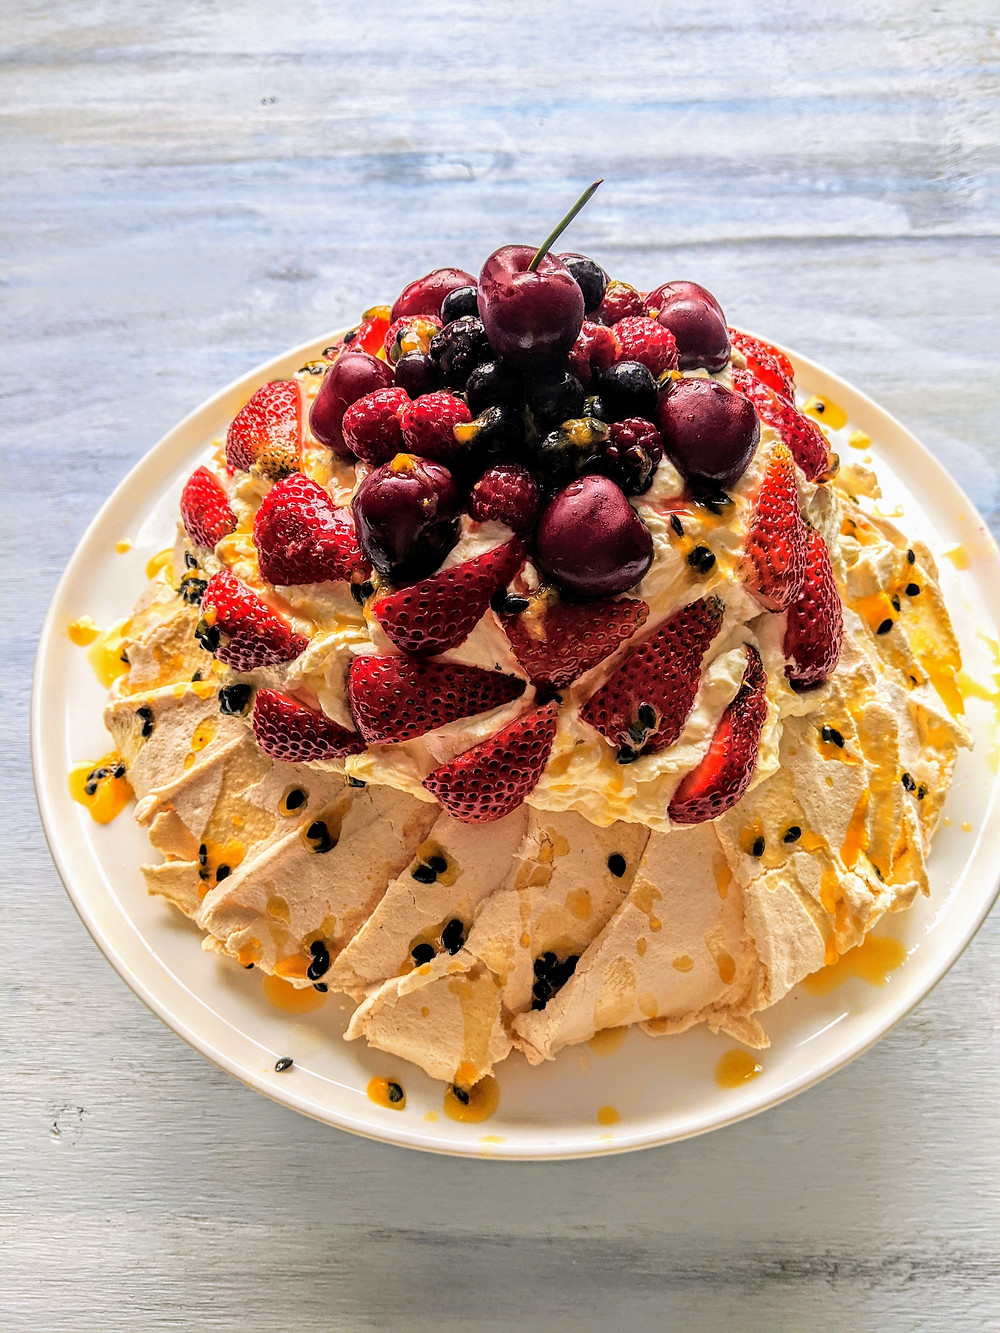 Pavlova cake with strawberries, passiofruit and cherries on top